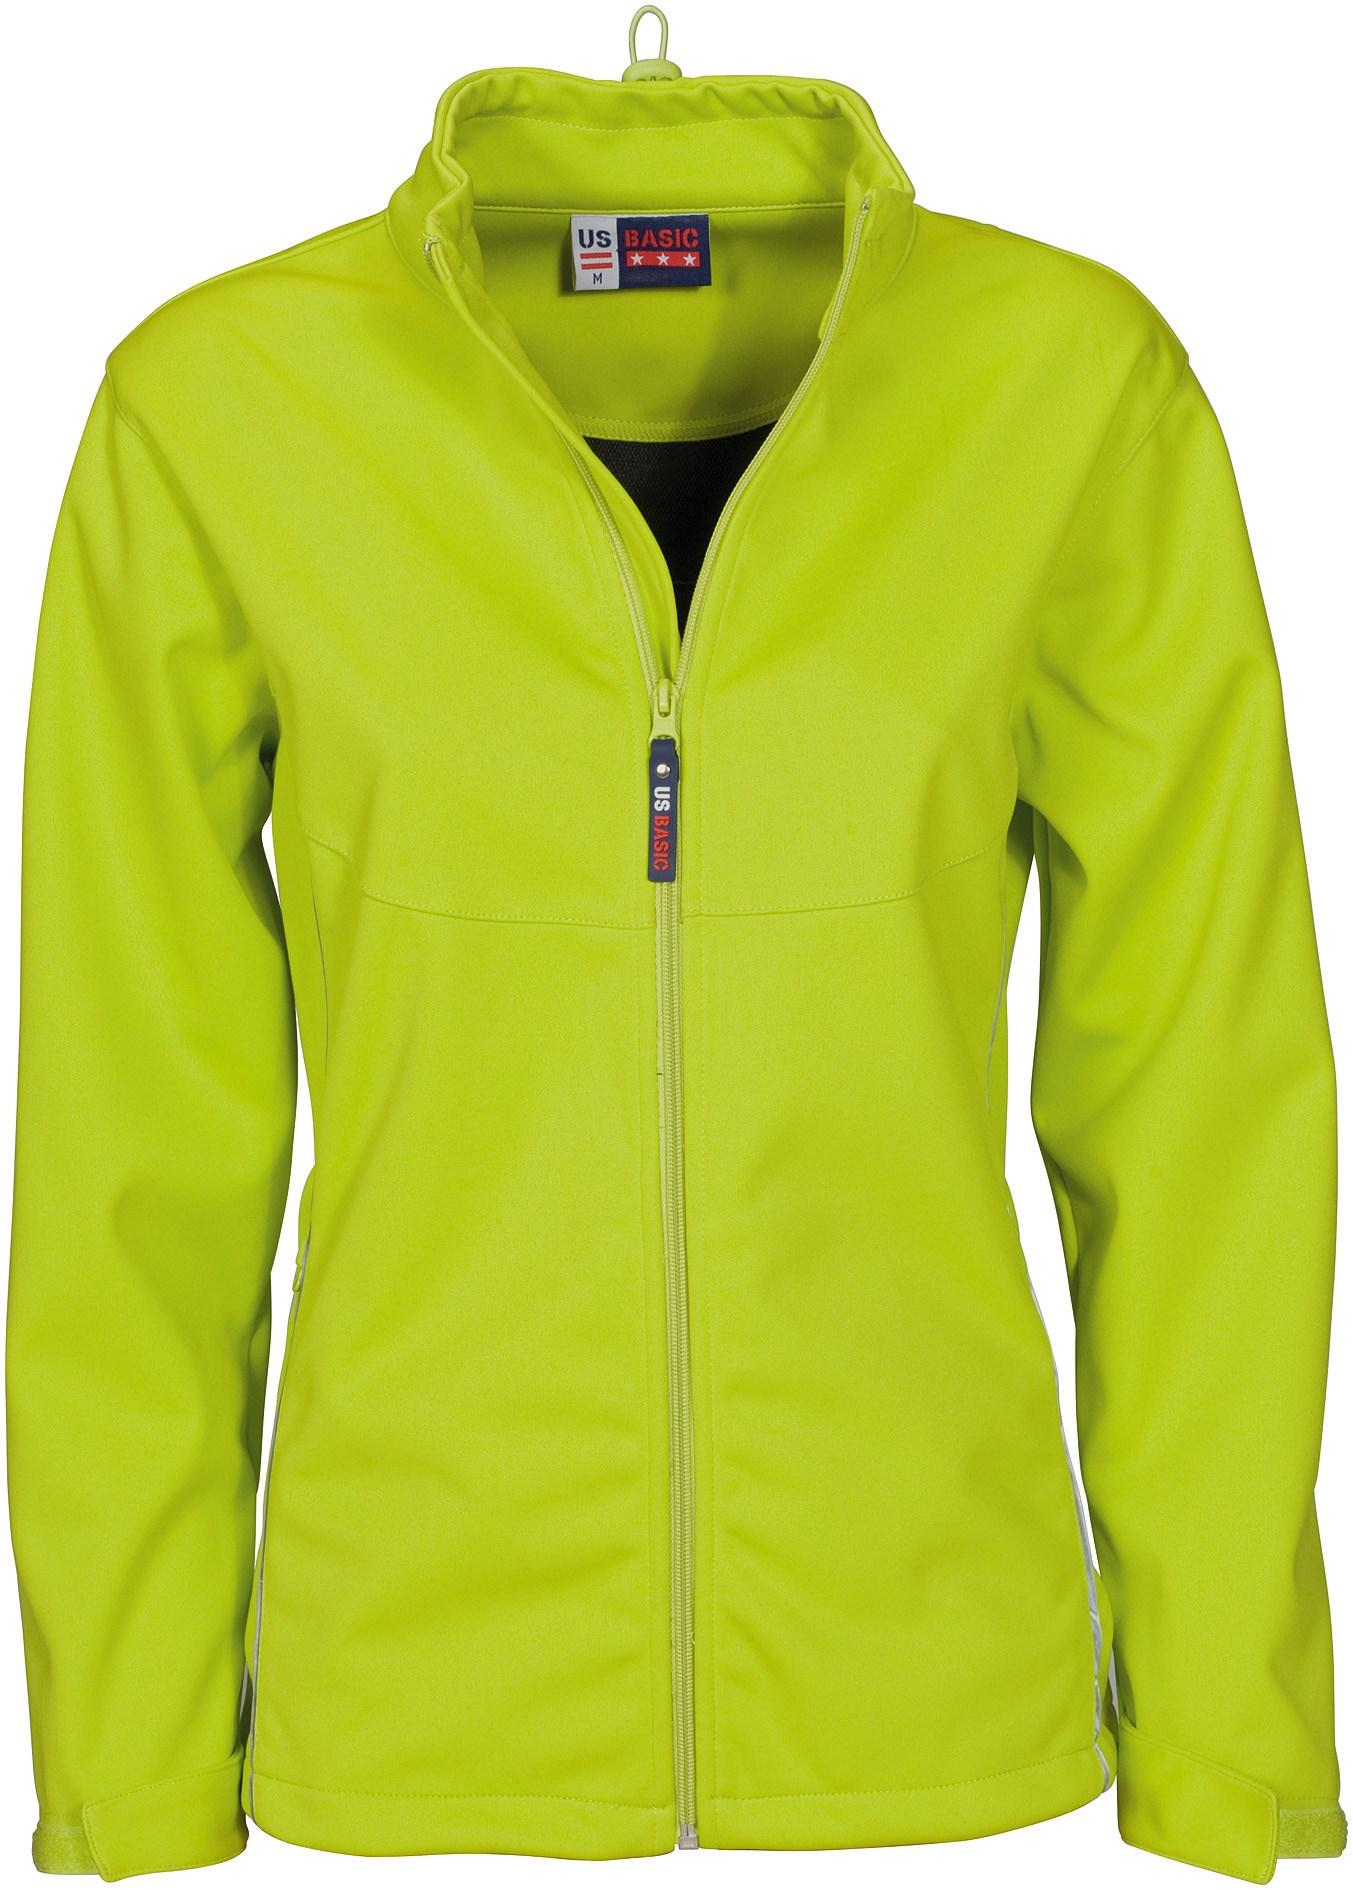 Ladies Cromwell Softshell Jacket - Lime Only